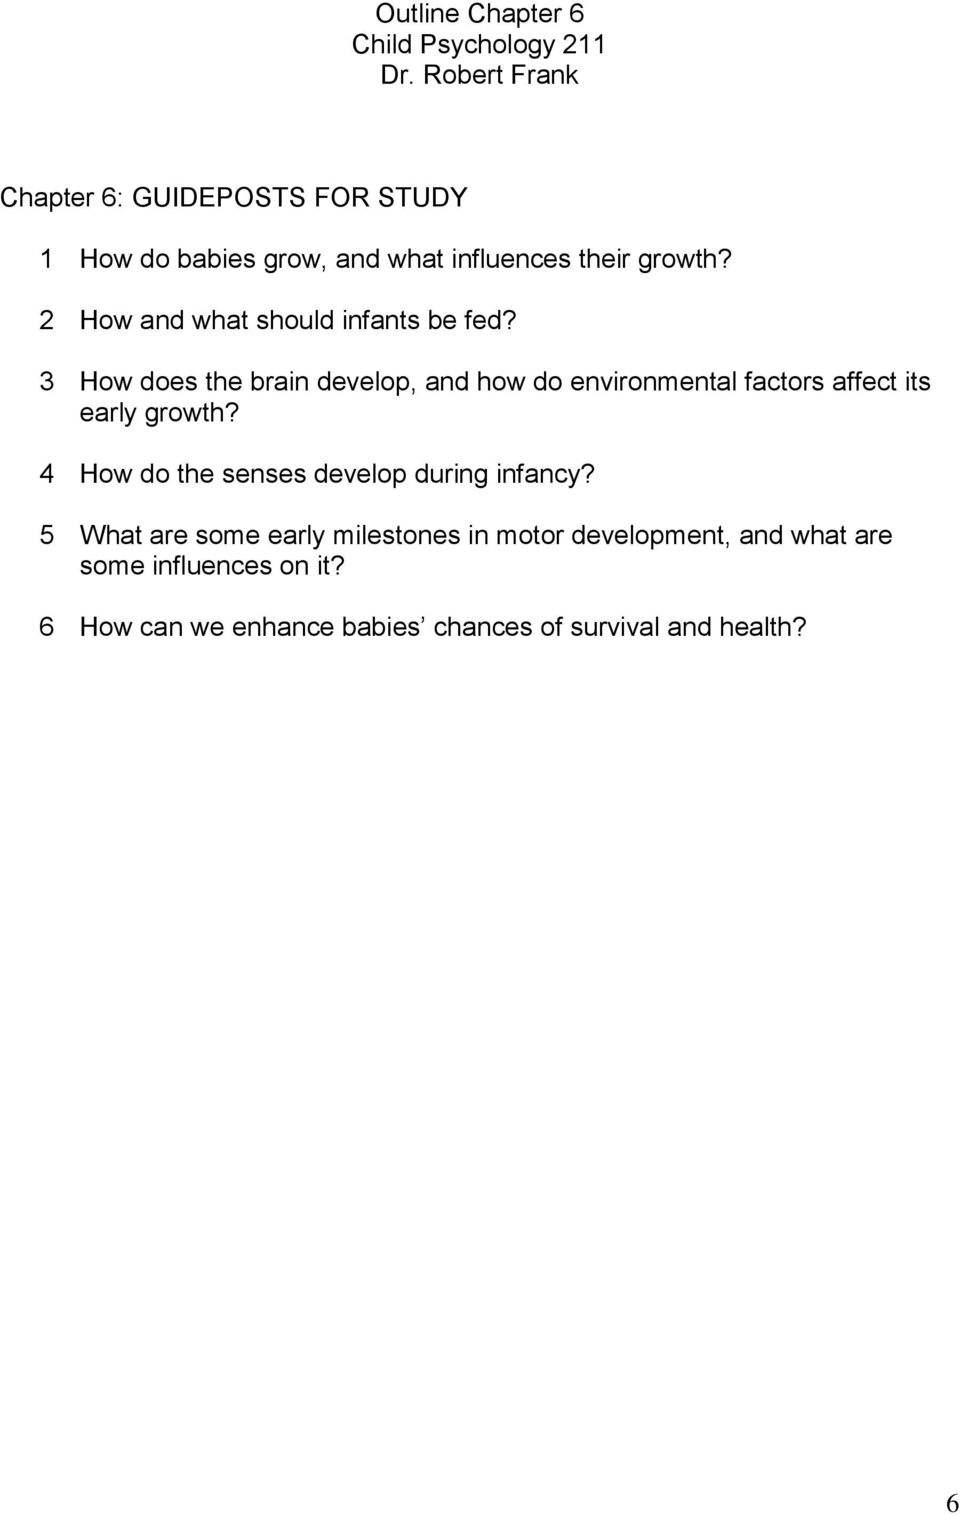 3 How does the brain develop, and how do environmental factors affect its early growth?